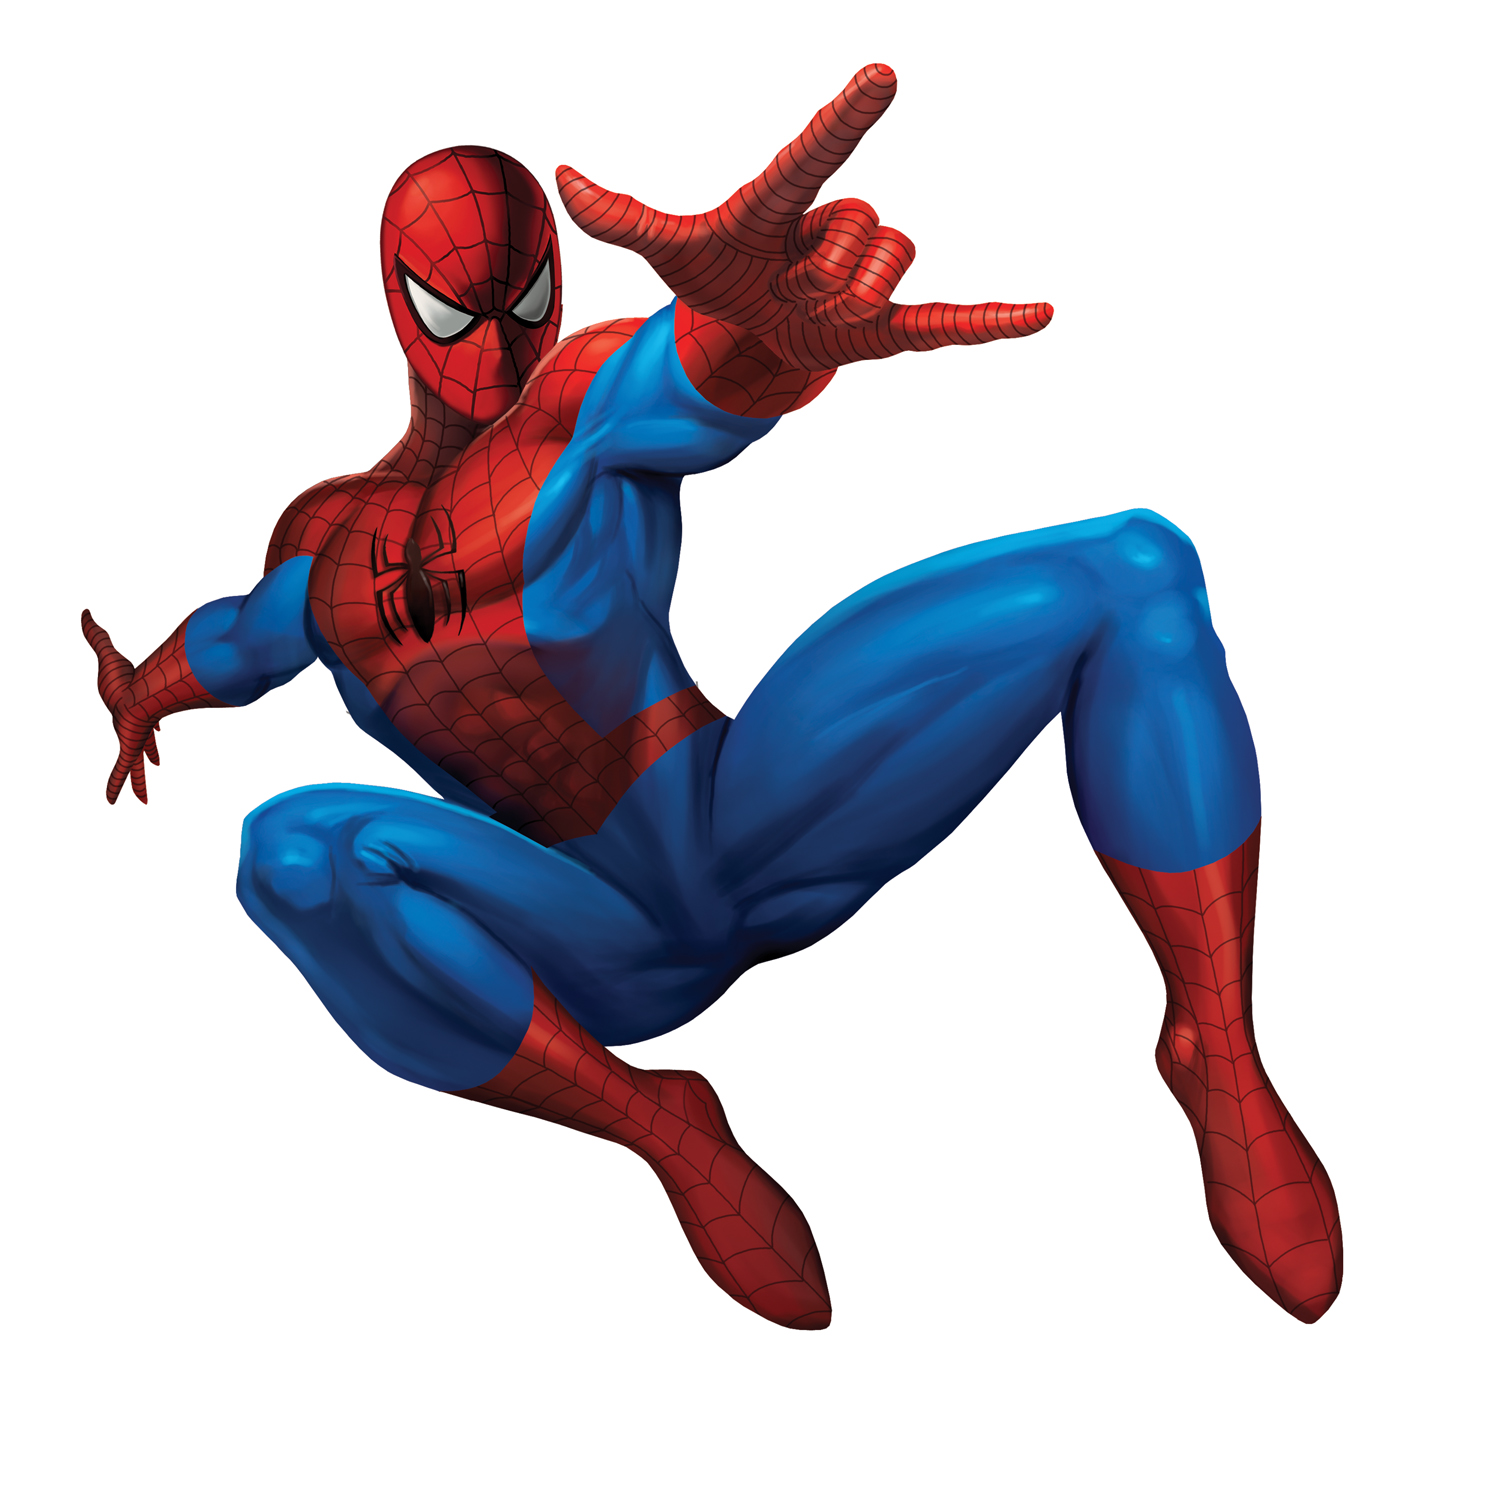 sspiderman 3